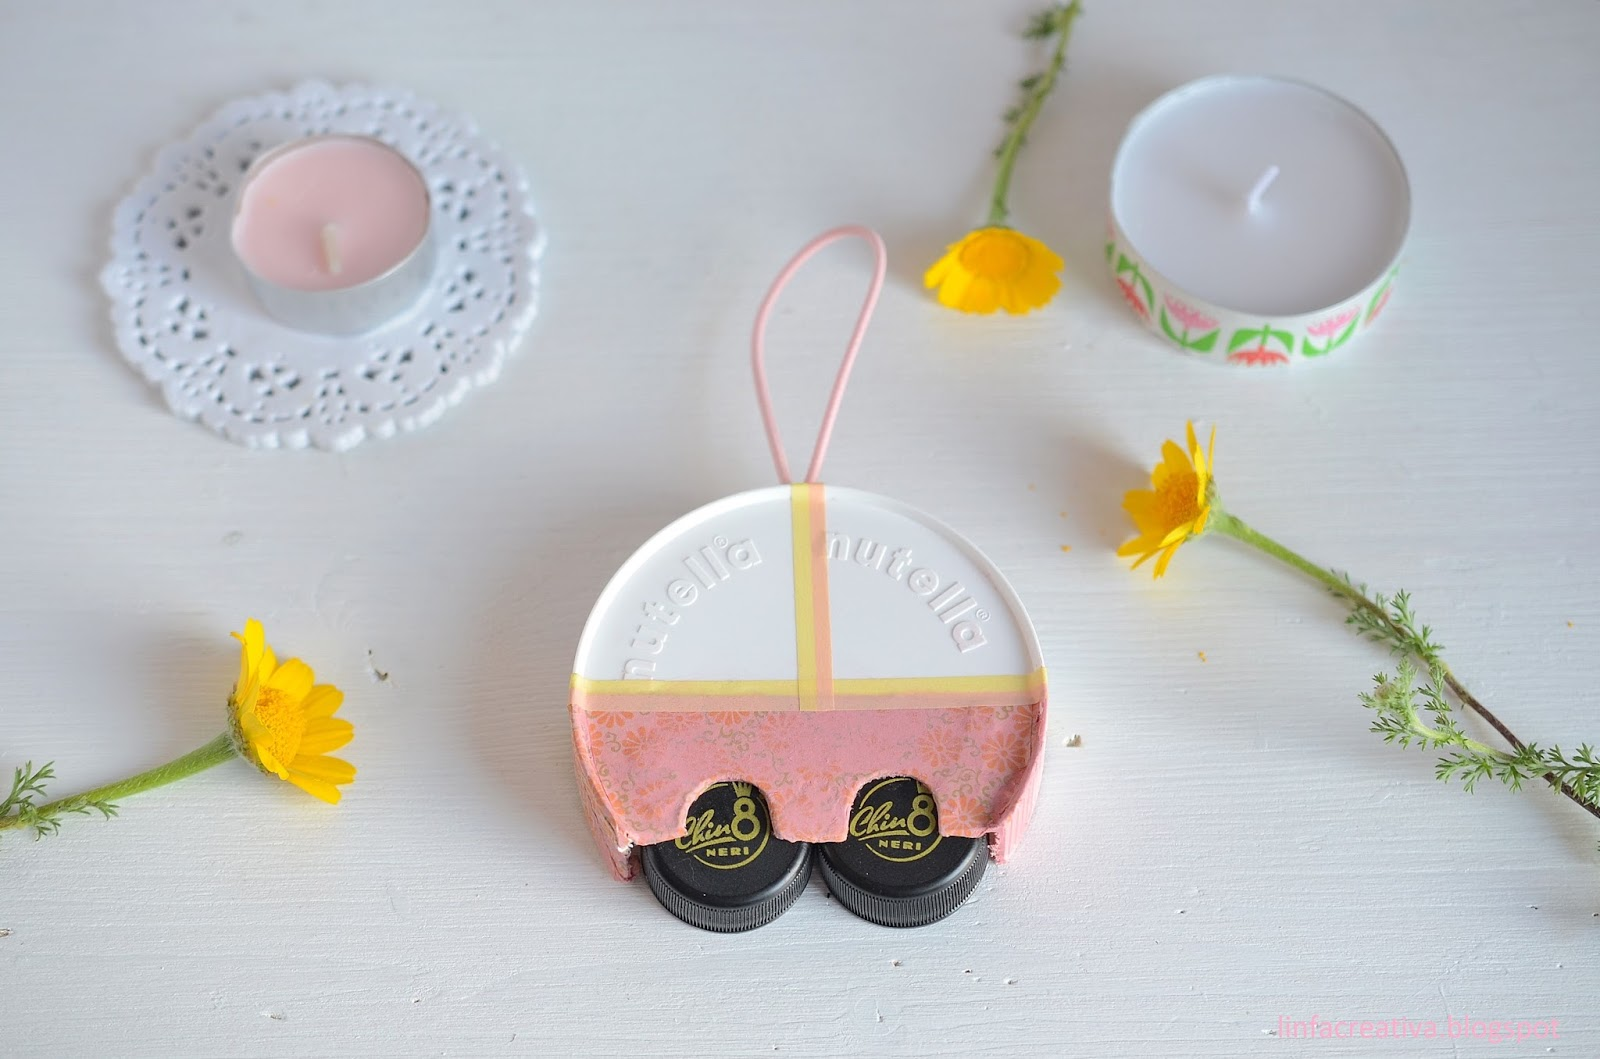 http://linfacreativa.blogspot.it/2014/06/riciclo-creativo-mini-caravan.html